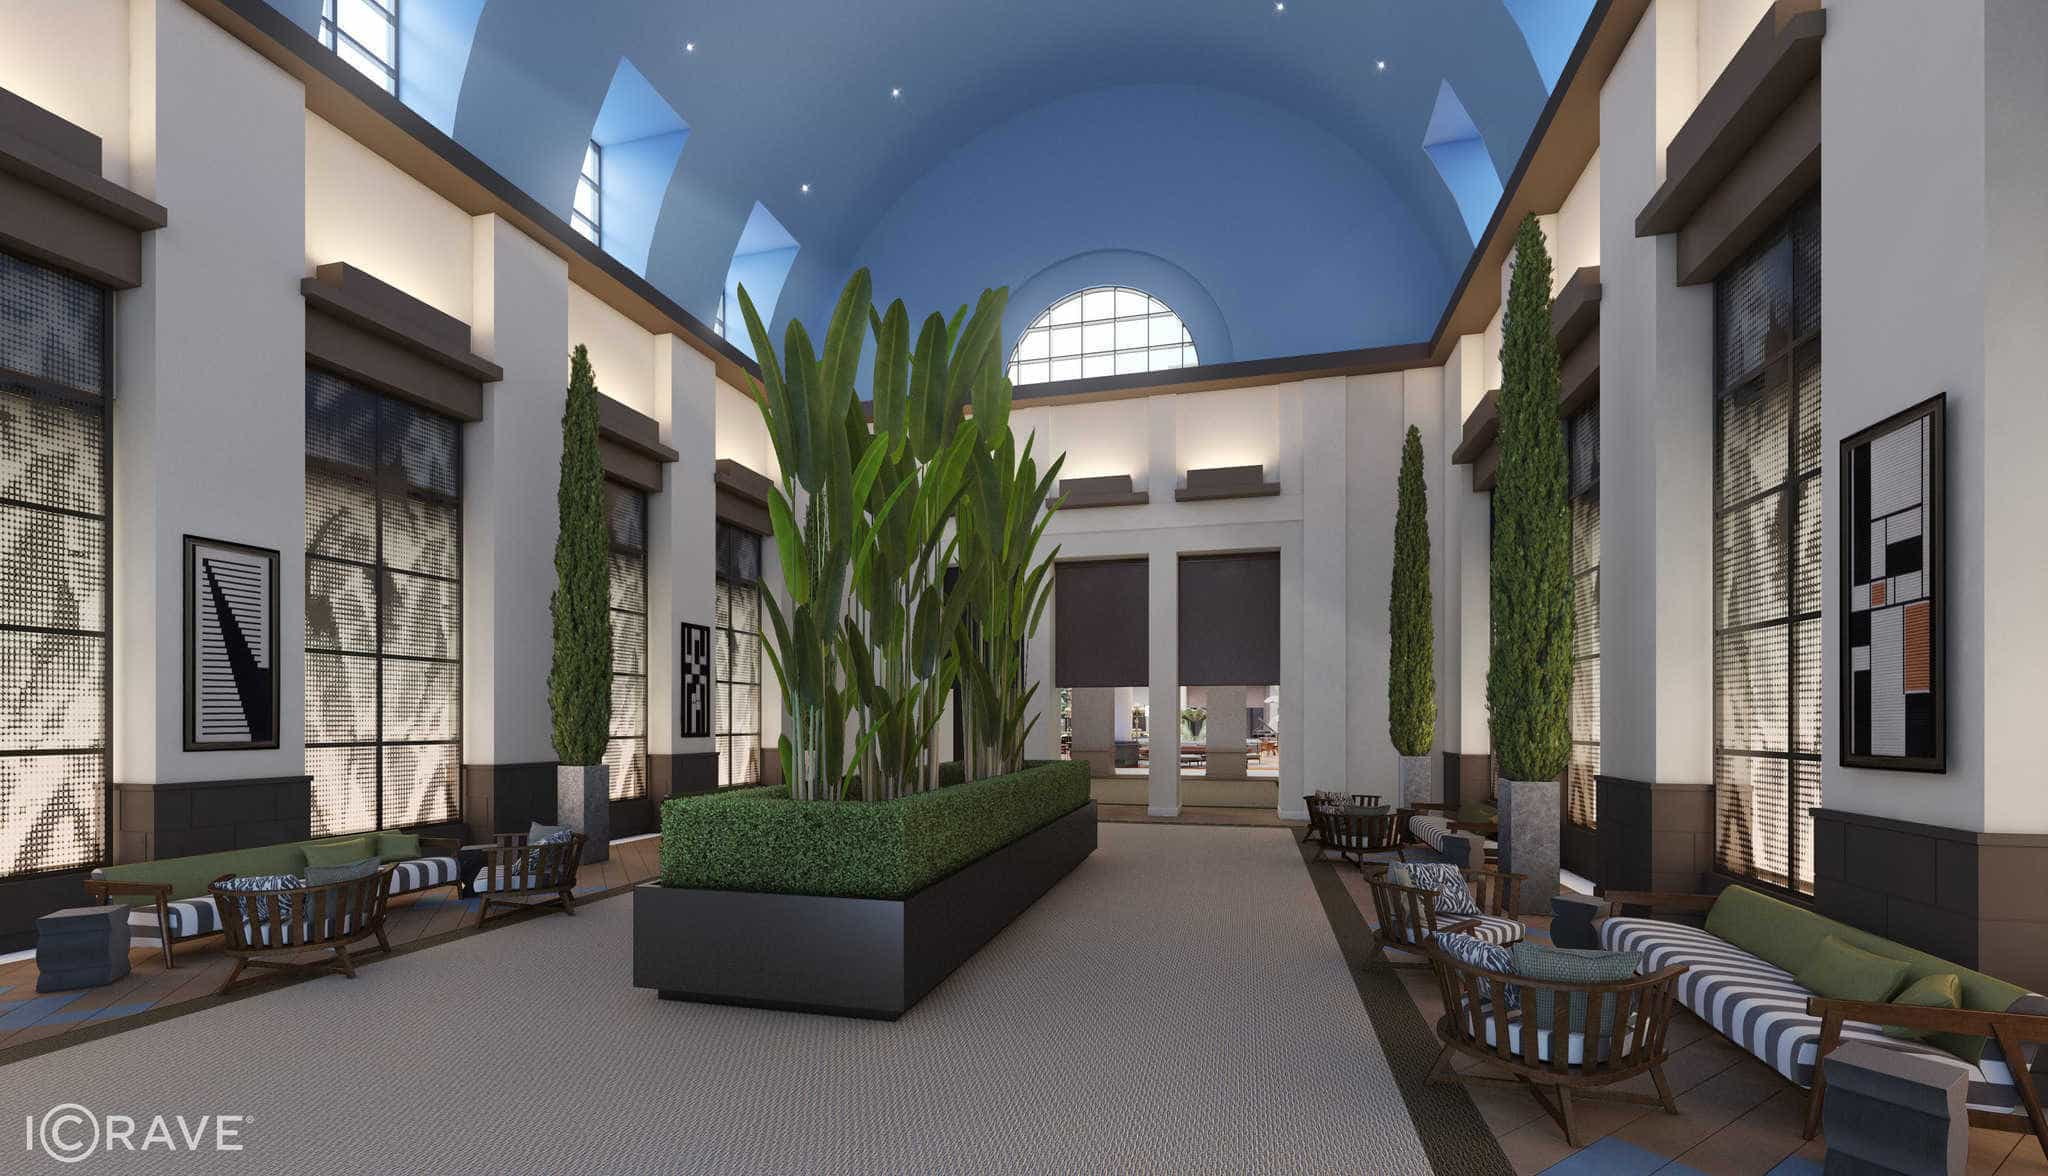 Walt Disney World Dolphin Hotel Lobby Undergoing Refurbishment